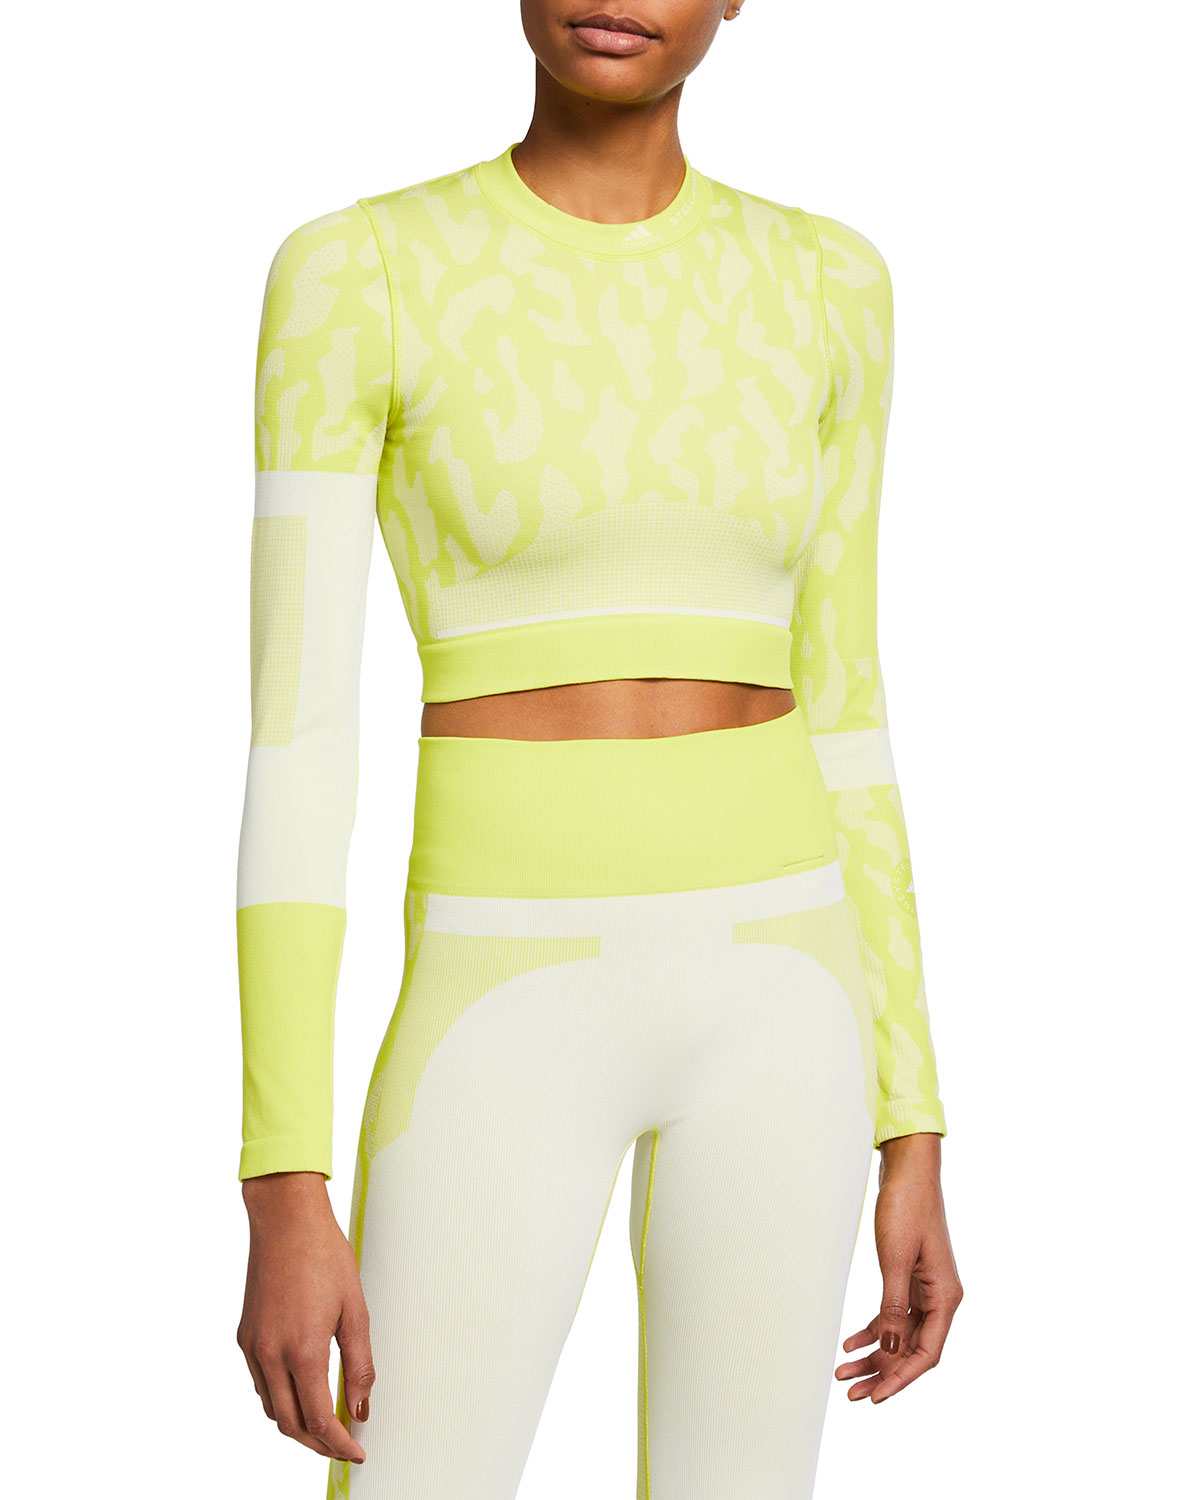 Adidas By Stella Mccartney Cottons LONG-SLEEVE PRINTED ACTIVE CROP TOP